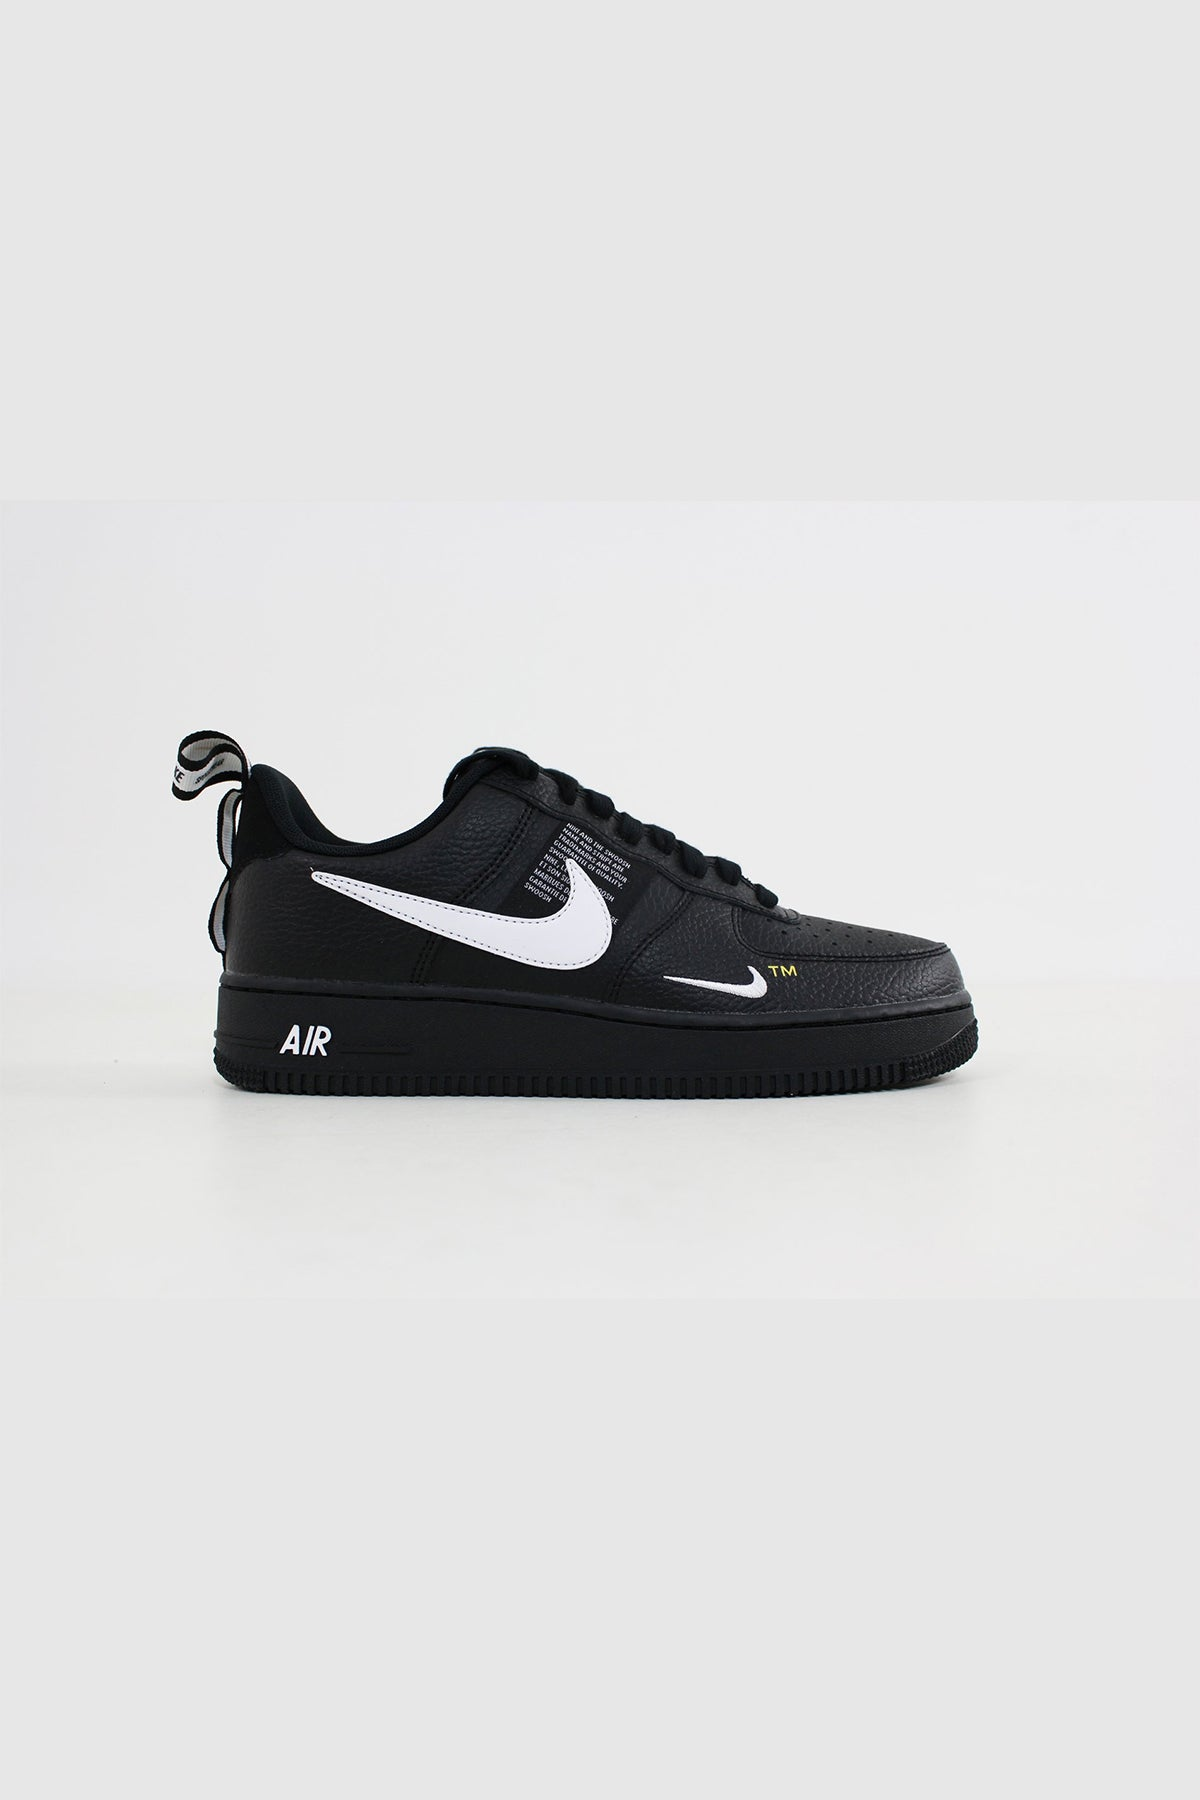 nike air force 1 07 lvl 8 weiß